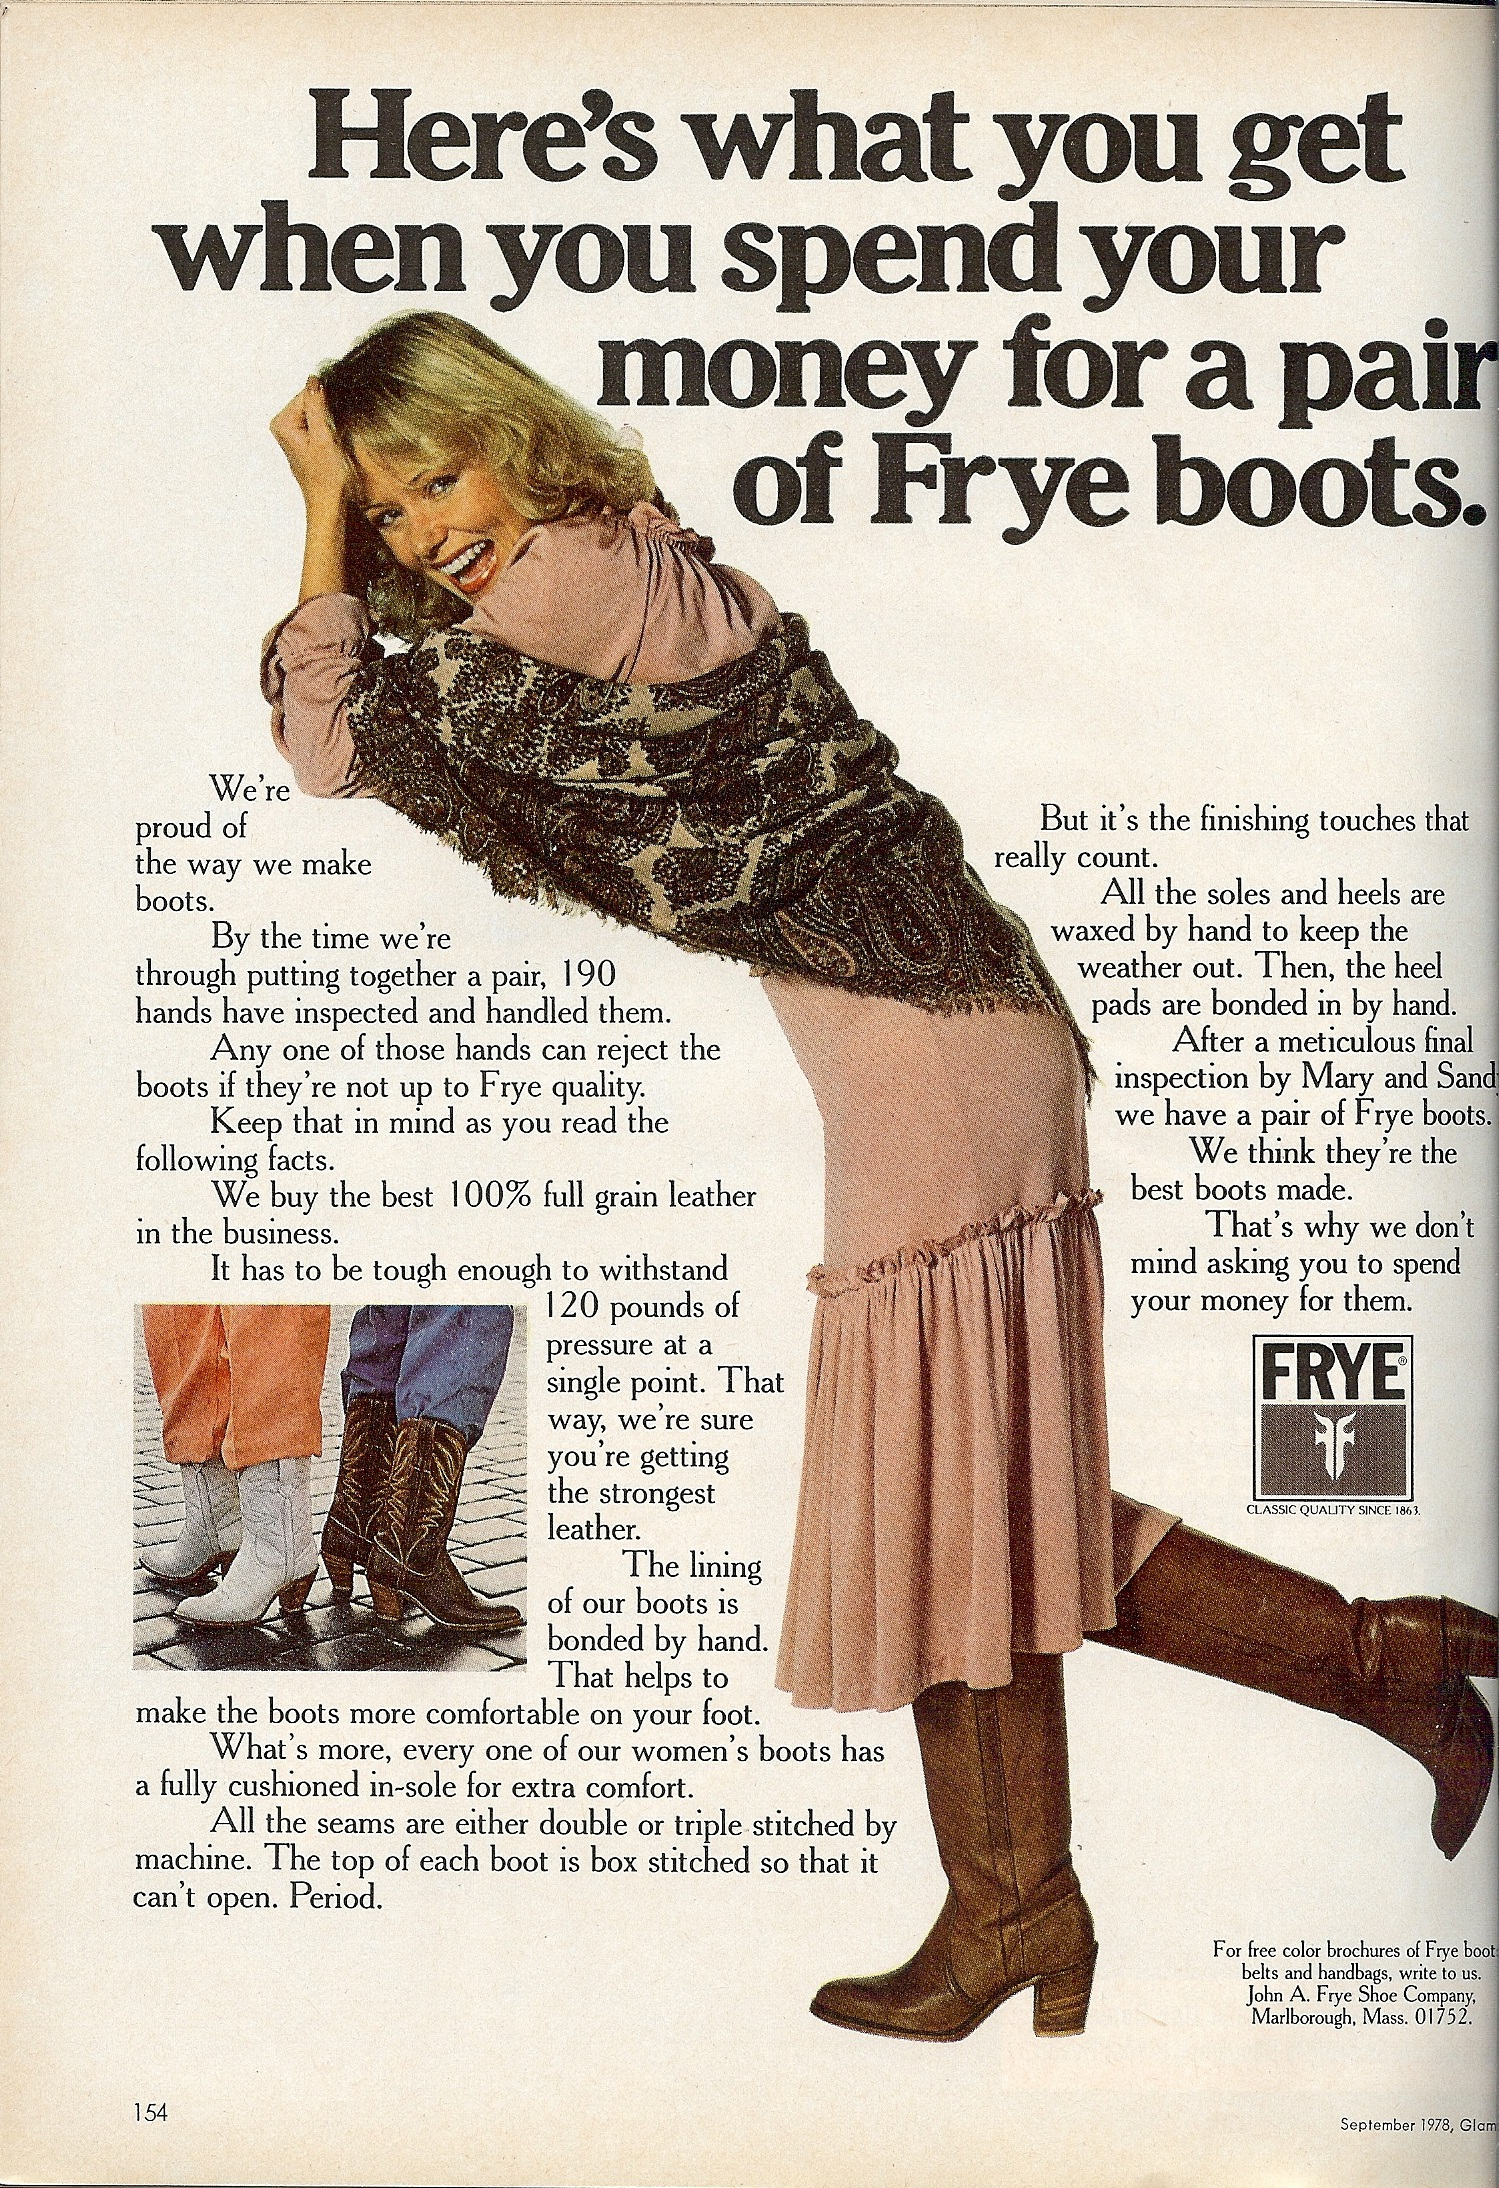 Frye boots ad from the 80s selling...a really well-made pair of boots